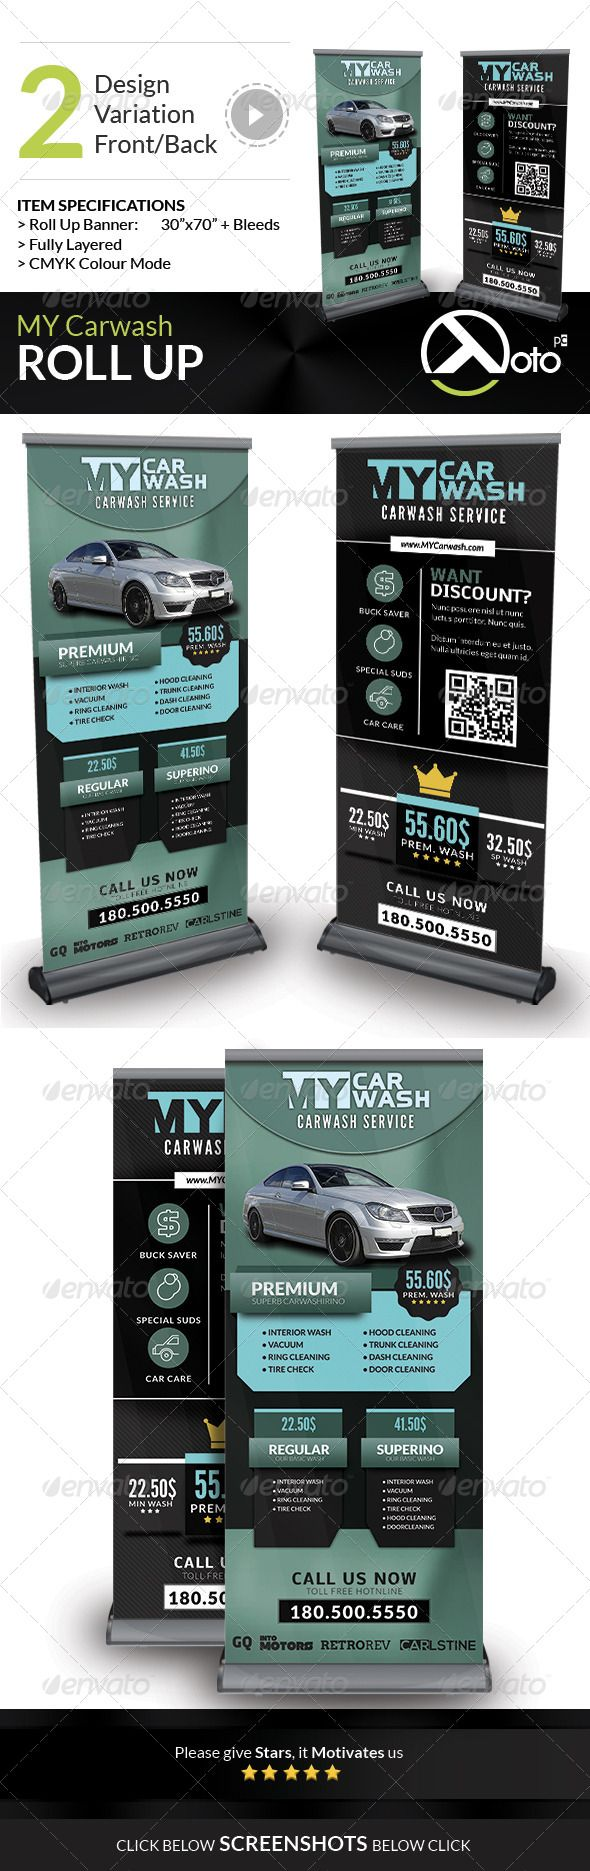 My automobile carwash service roll up banner